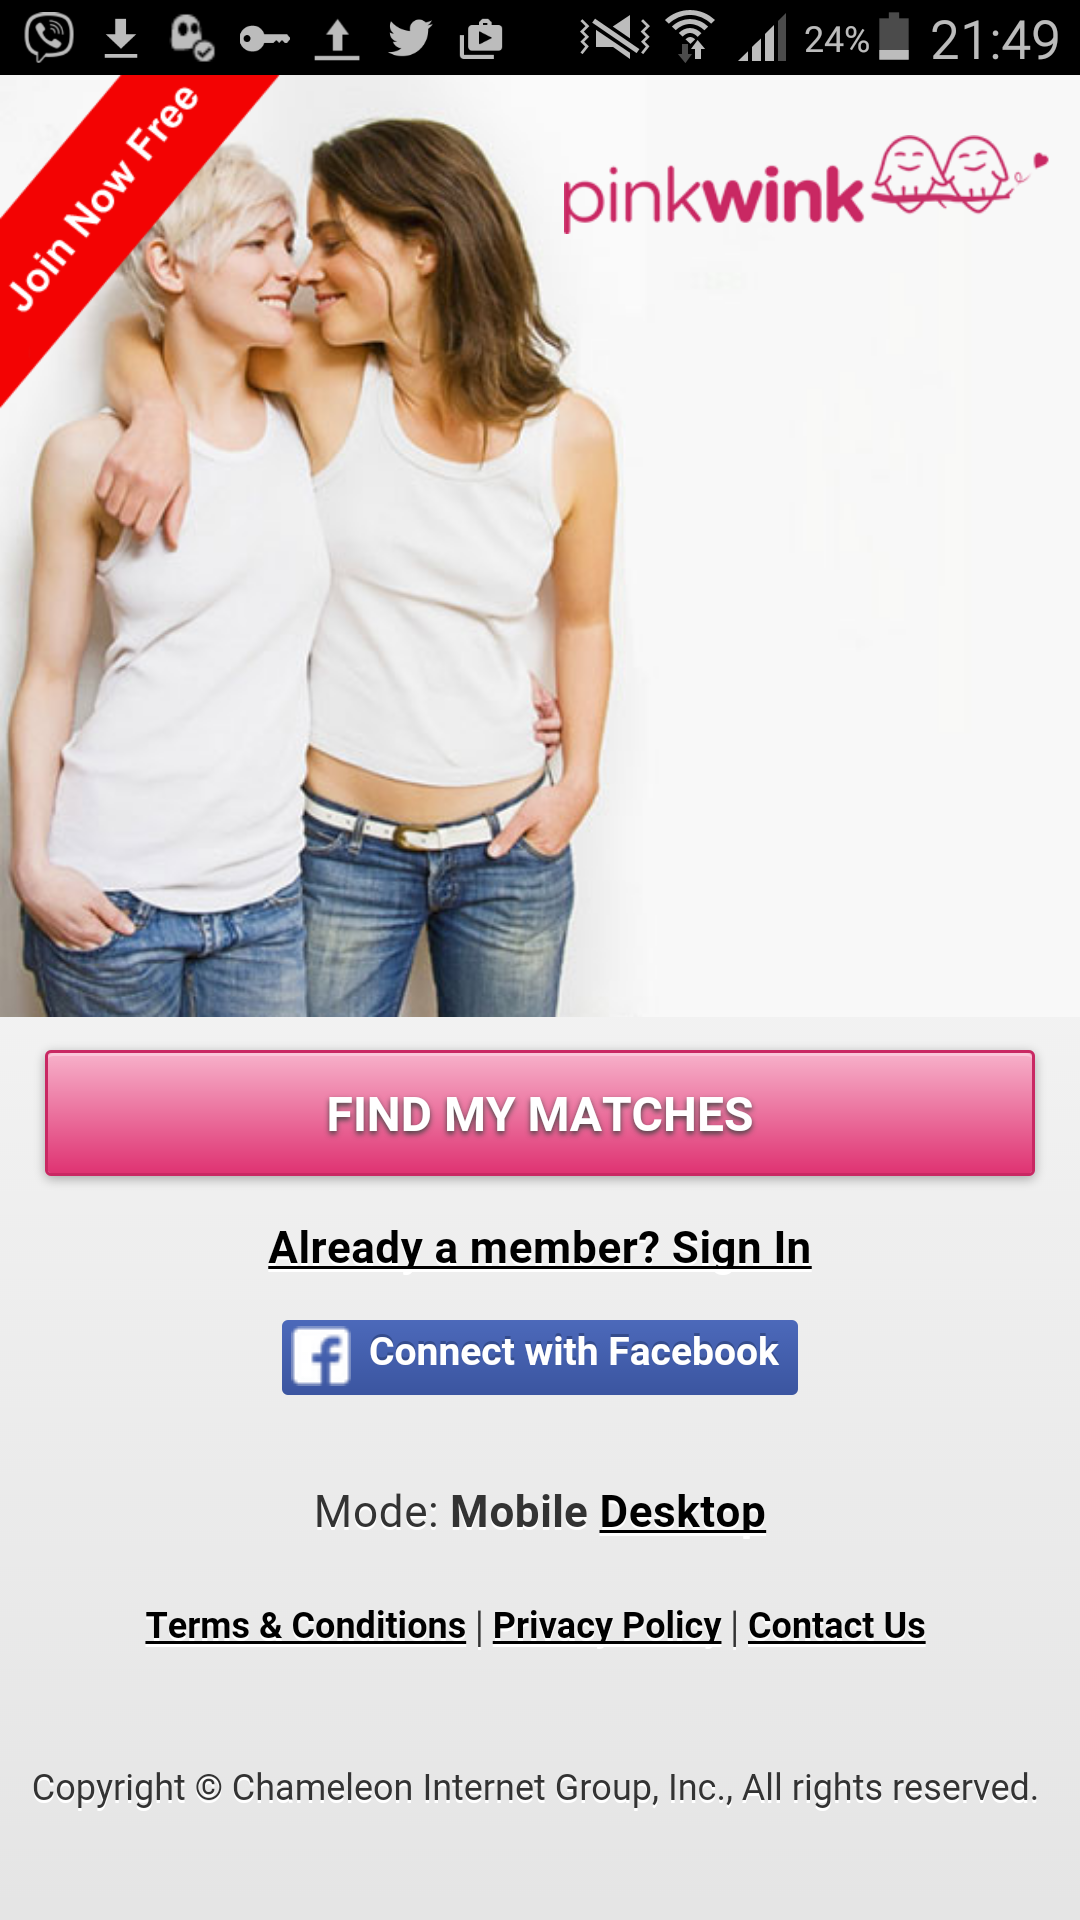 republic lesbian dating site Olivia lesbian travel: cruises, resorts and vacations for lesbians.